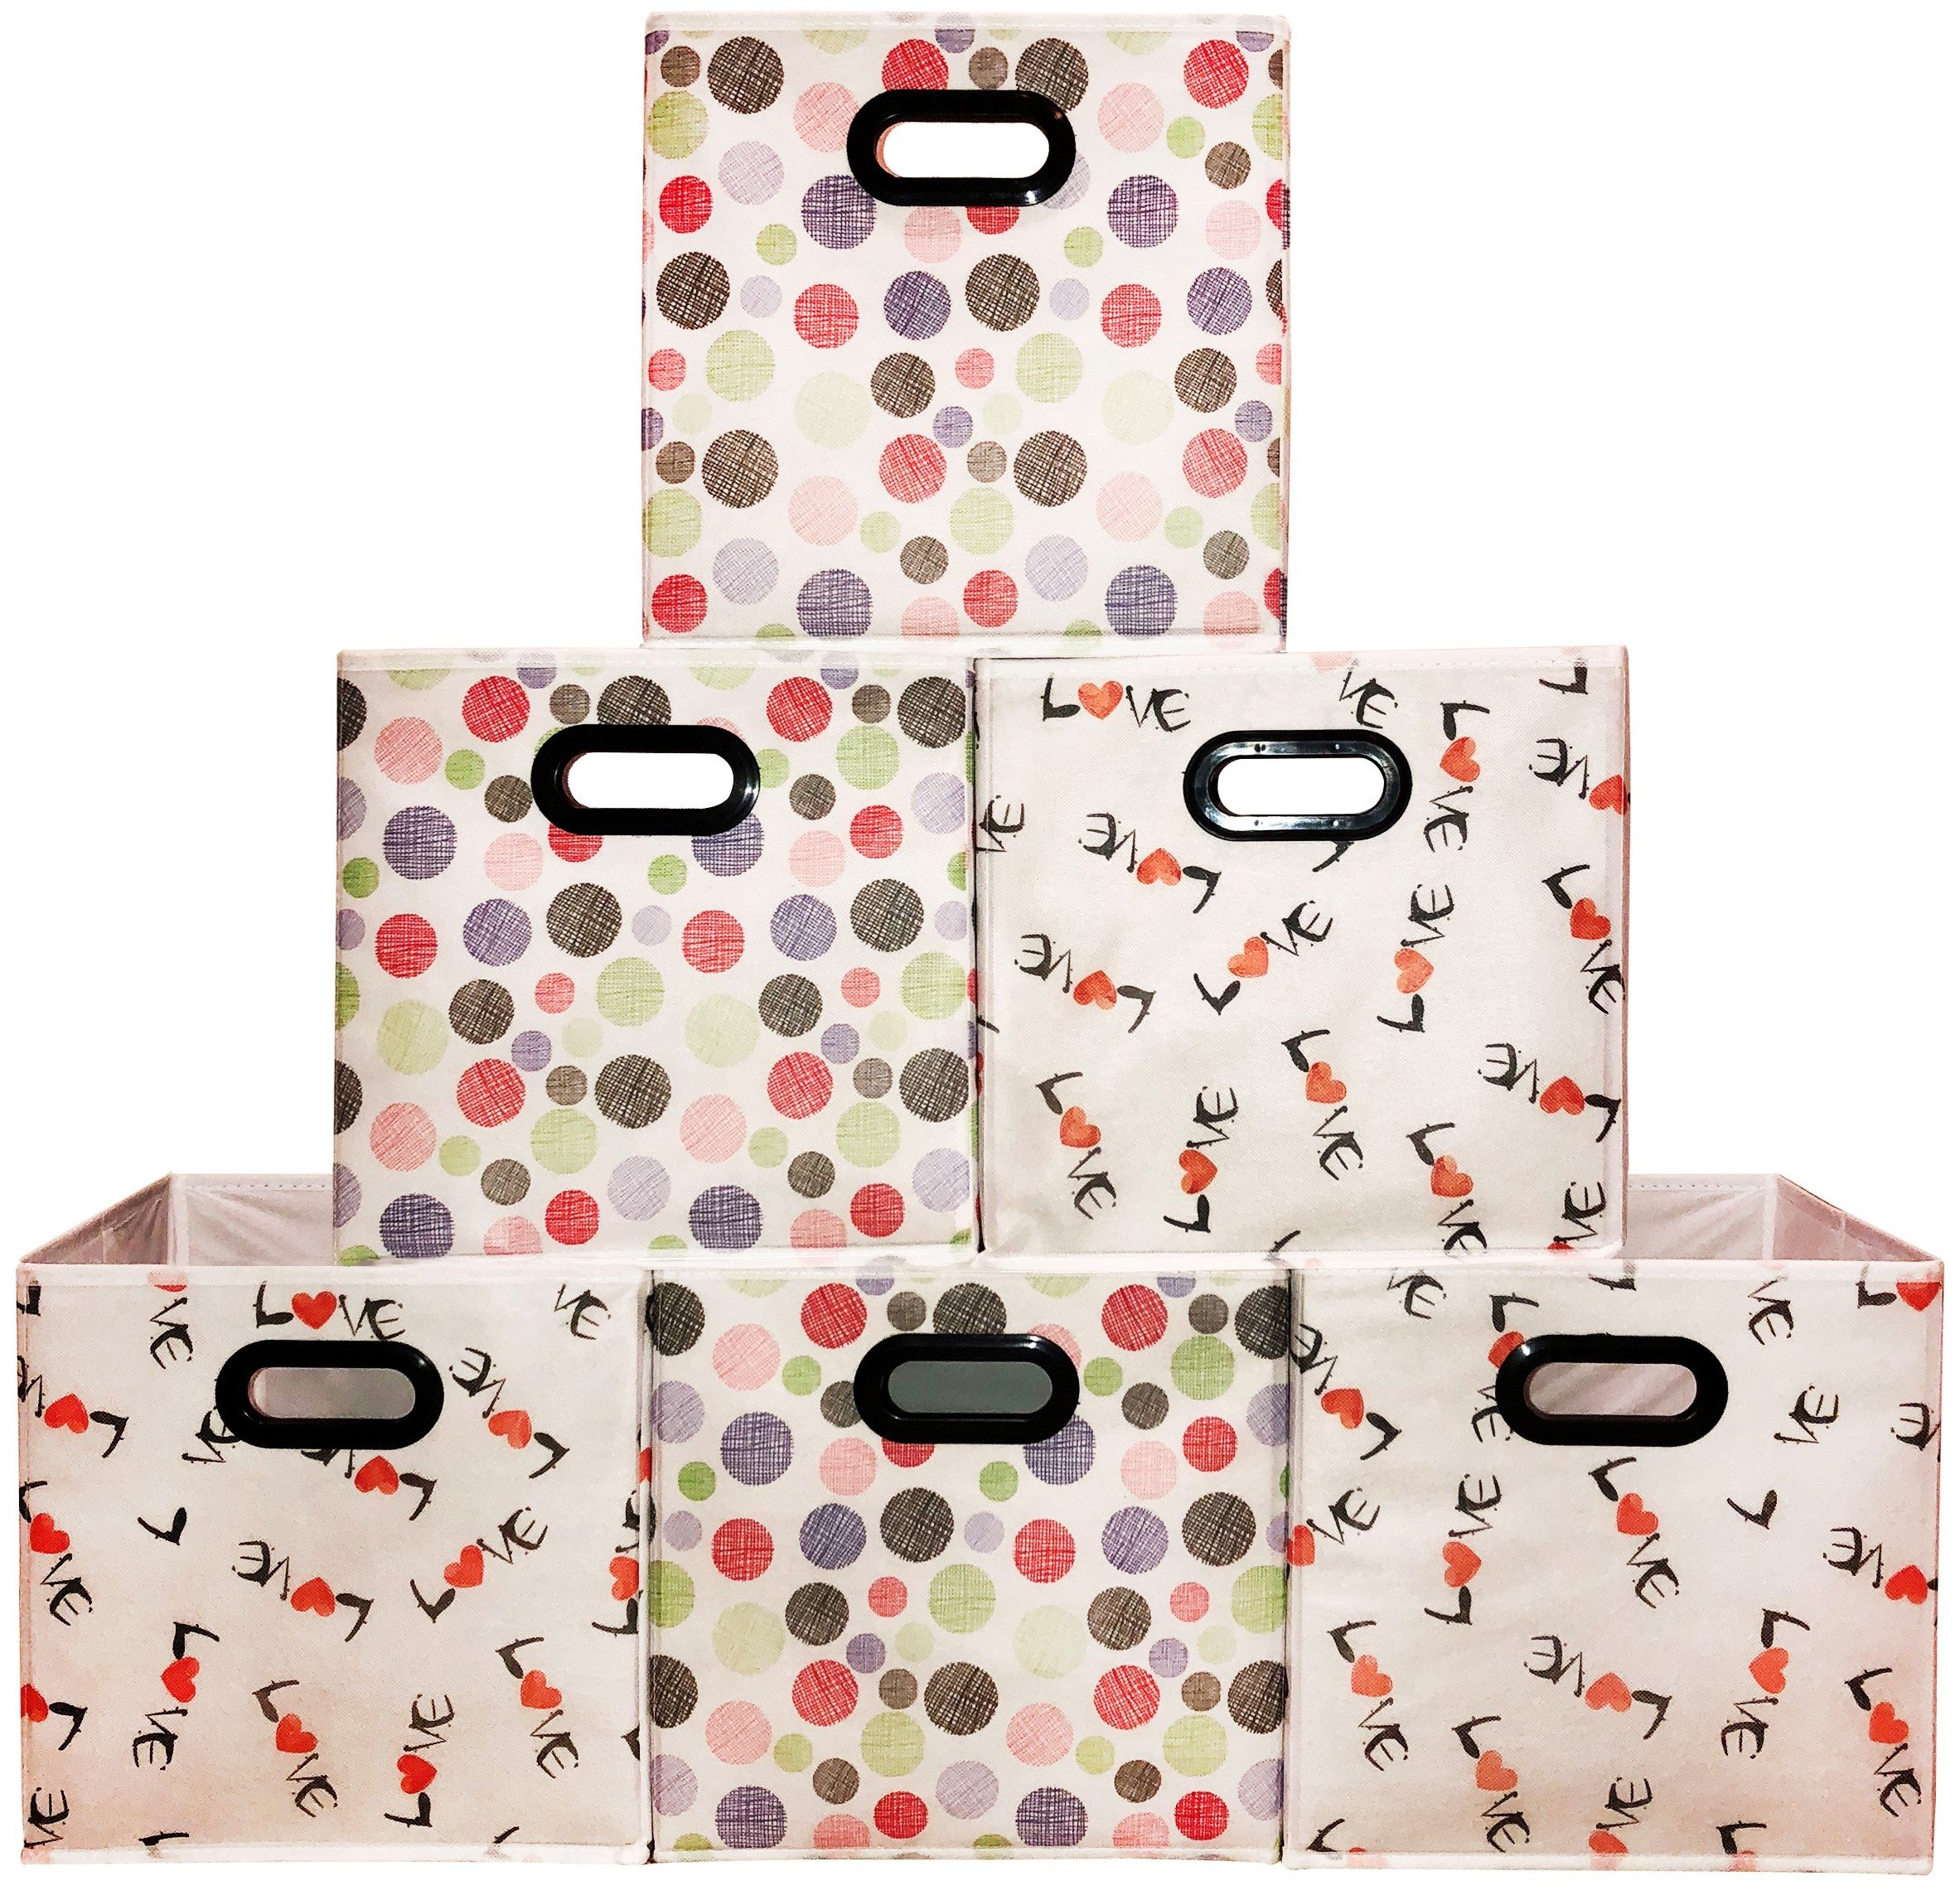 [6 Pack,Polka & Love Pattern] Large Storage Bins, Containers, Boxes, Tote, Baskets| Collapsible Storage Cubes For Household Offices Organization |Nursery Foldable Fresh Cubes| Dual Plastic Handle by Prorighty (Image #1)